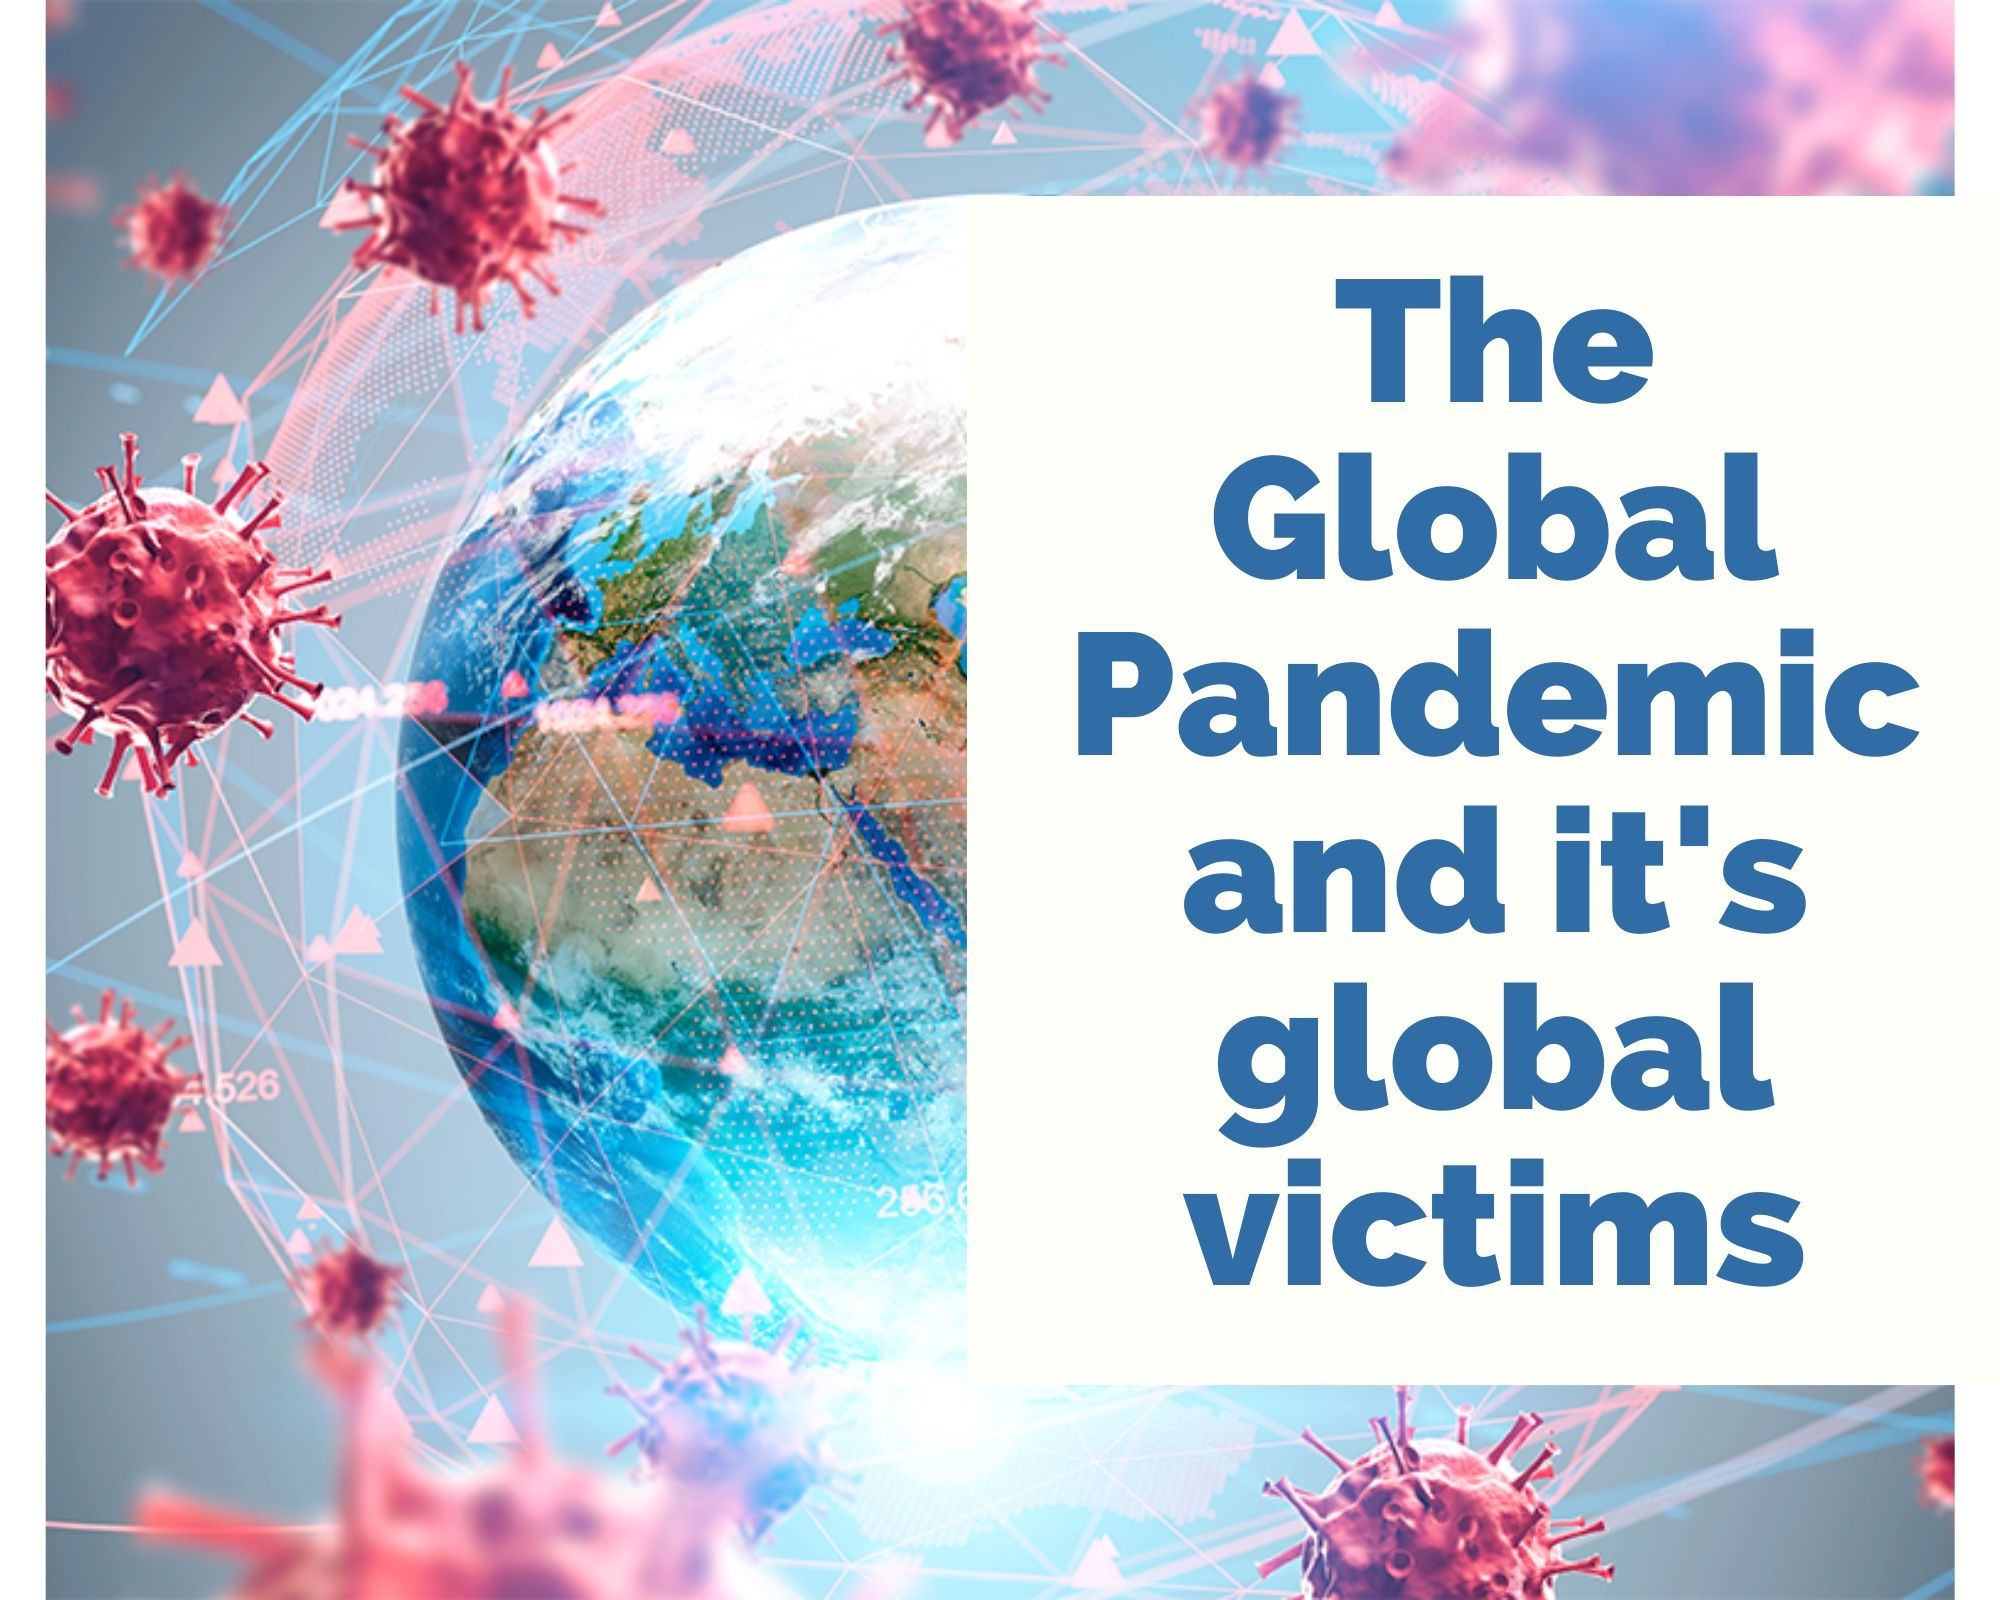 The Global Pandemic and it's global victims